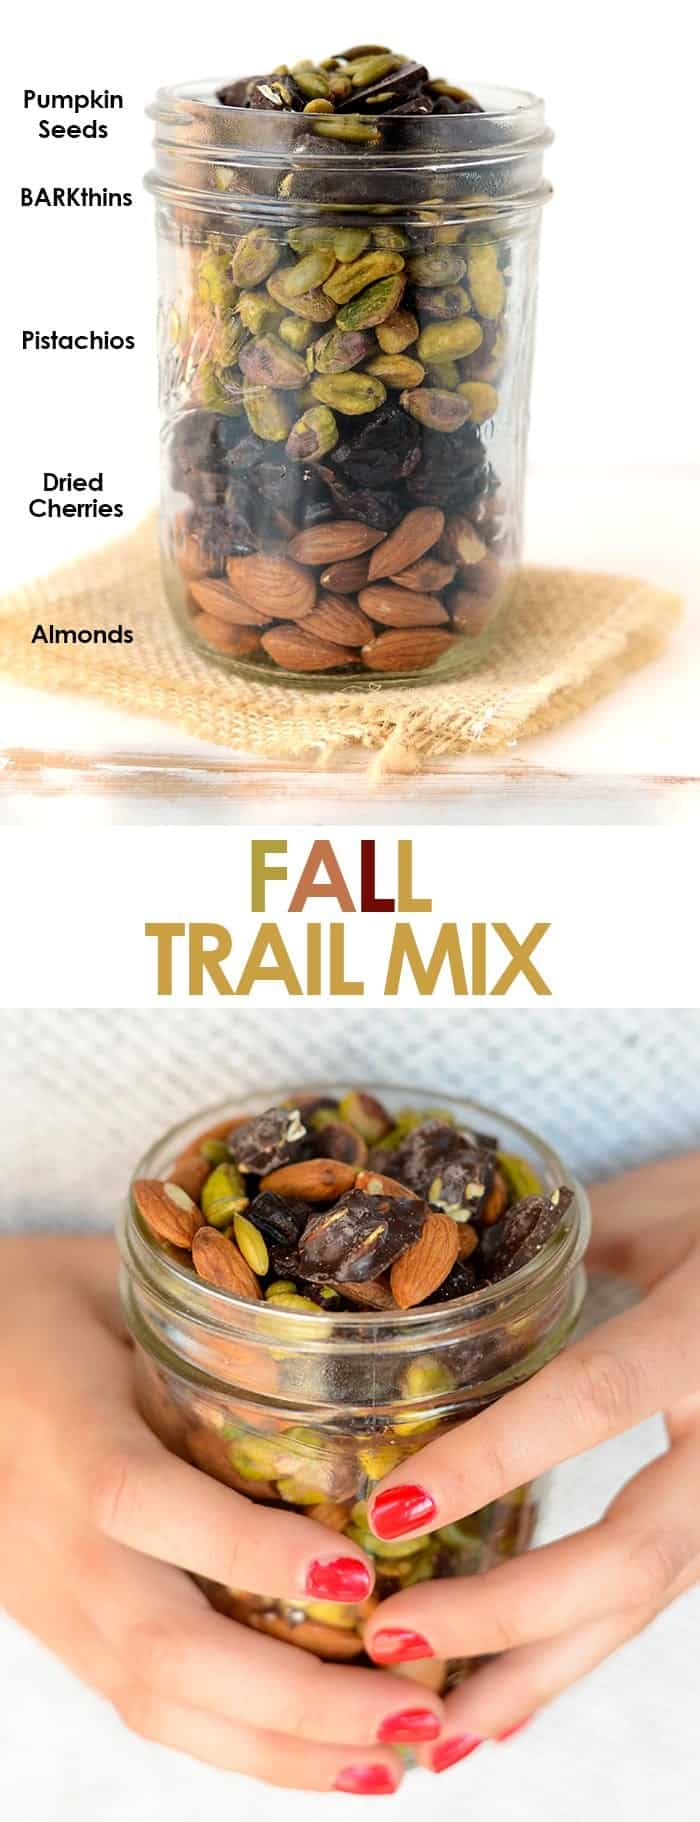 fall-trail-mix